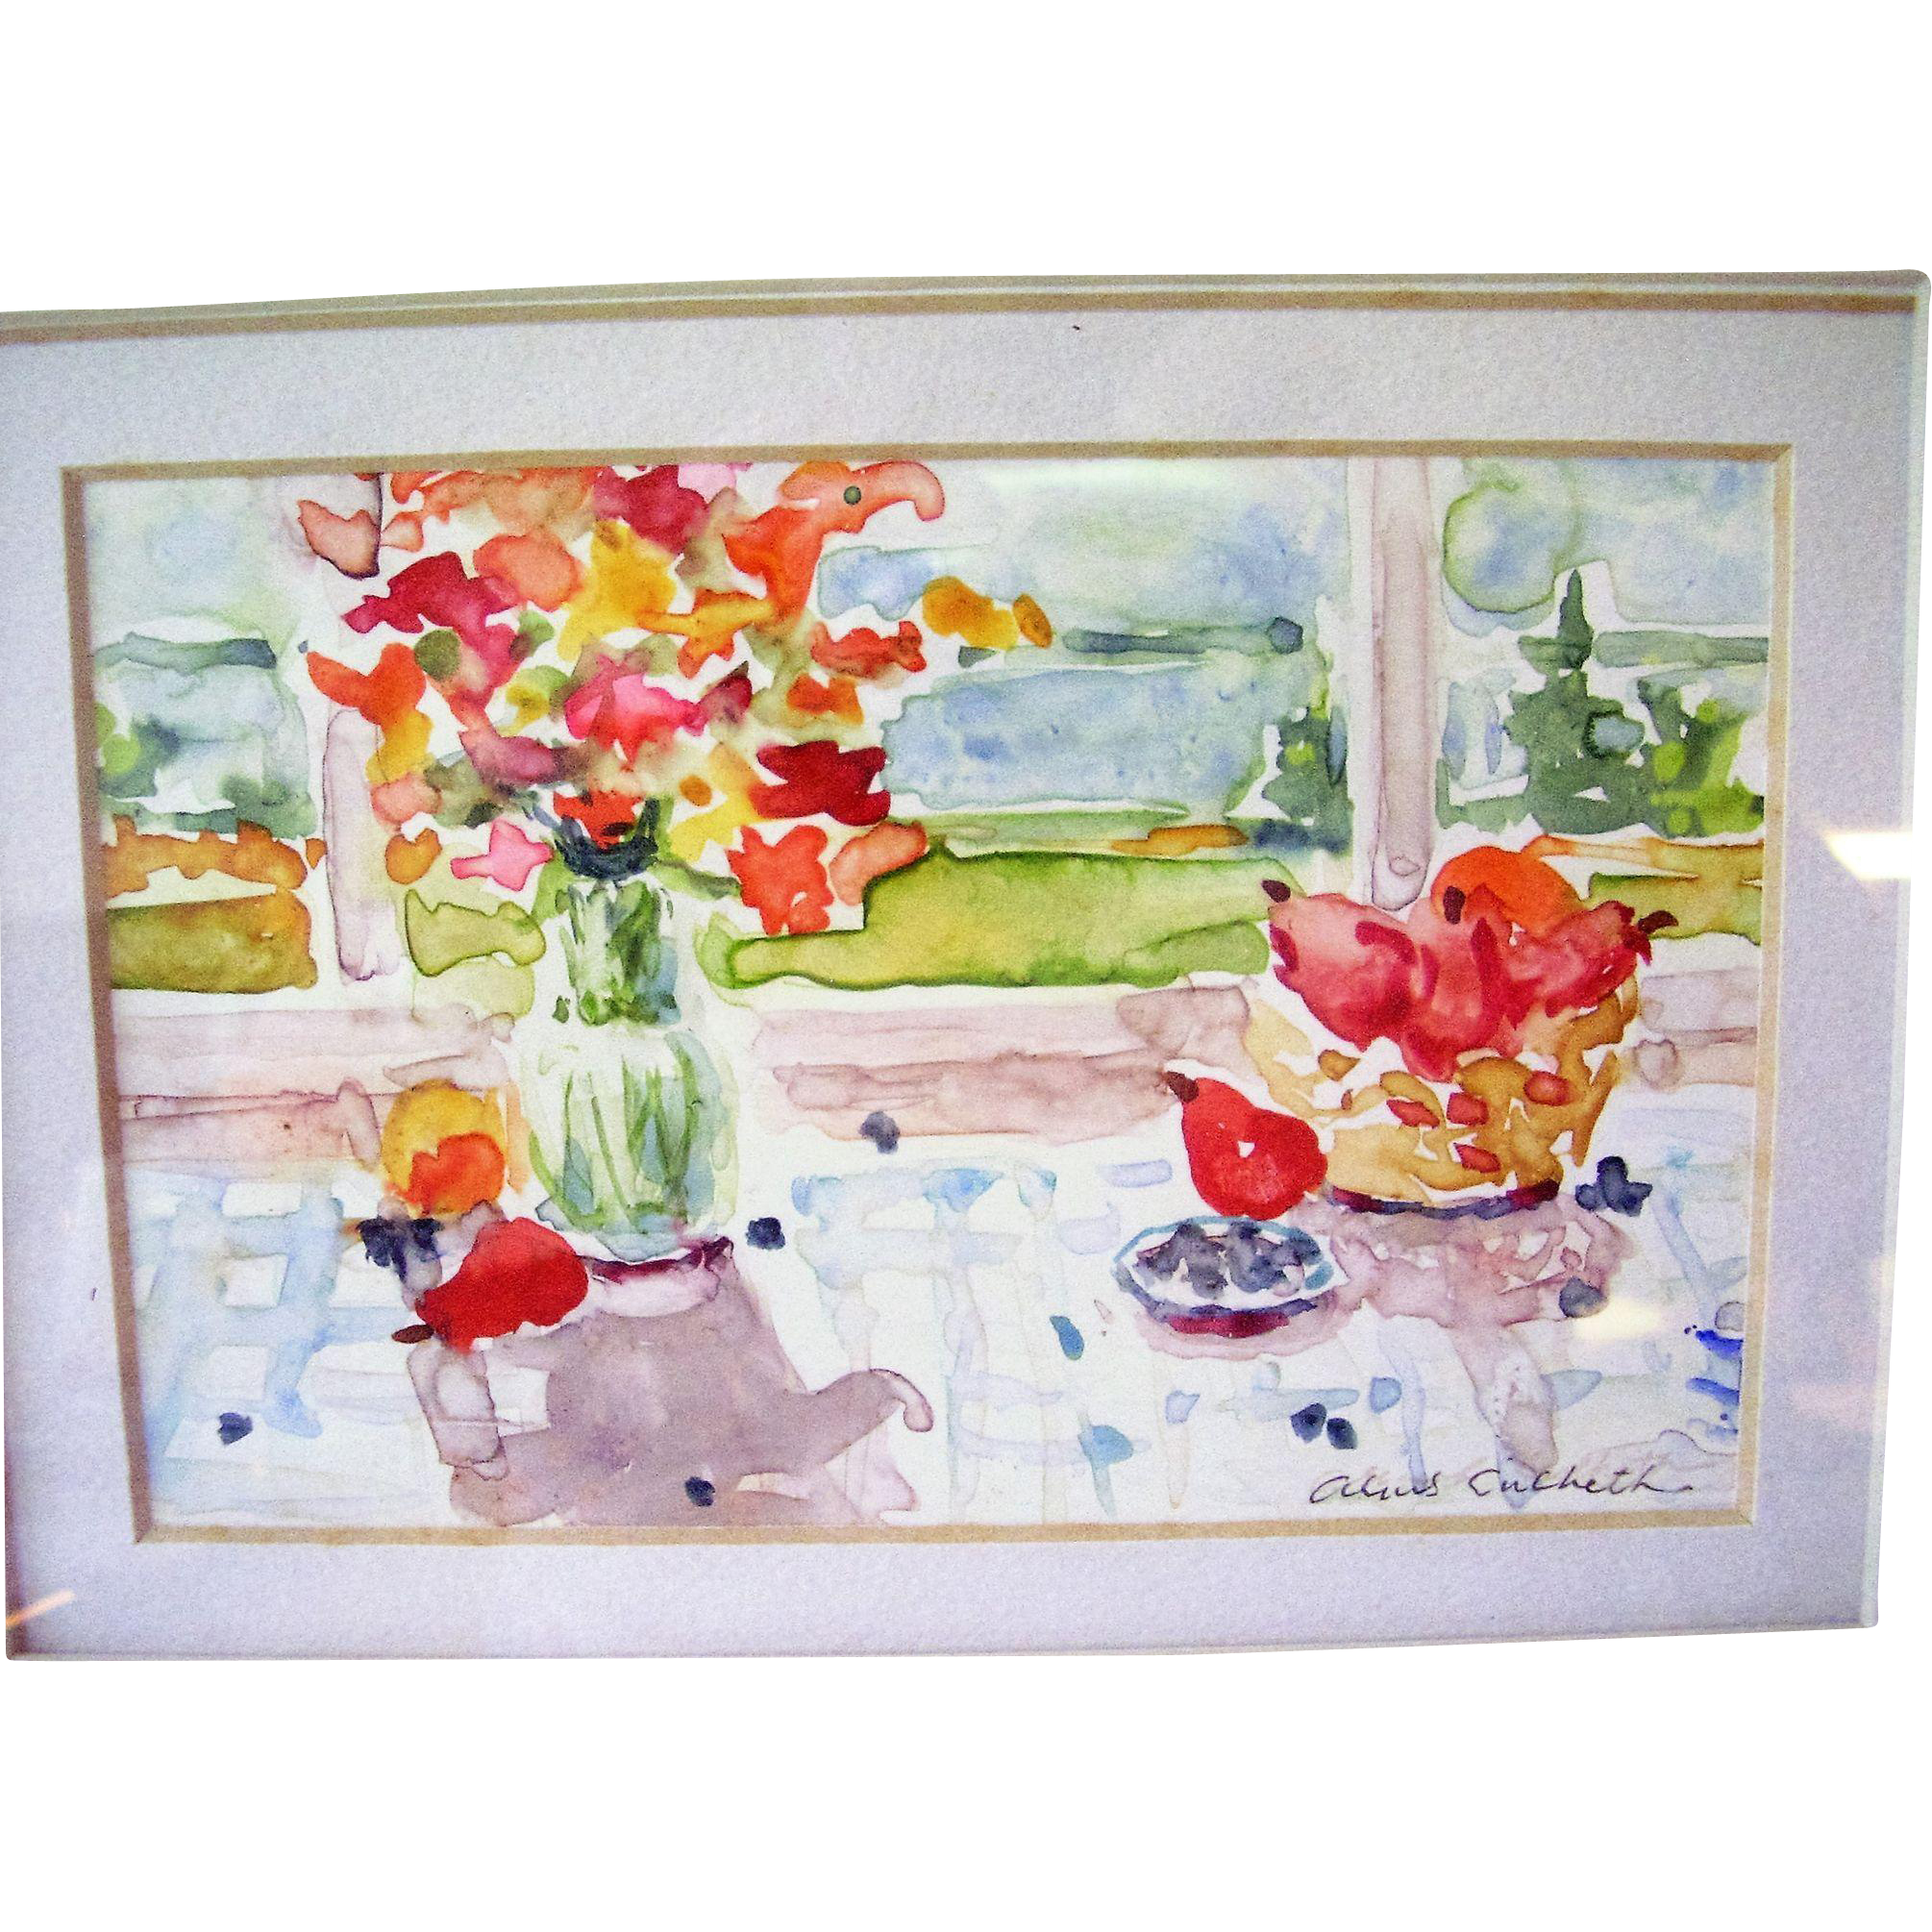 "Original Watercolor Painting by N.J. Artist Alice Skidmore Culbreth - Still Life with Water View - 12"" x 10"" Framed"